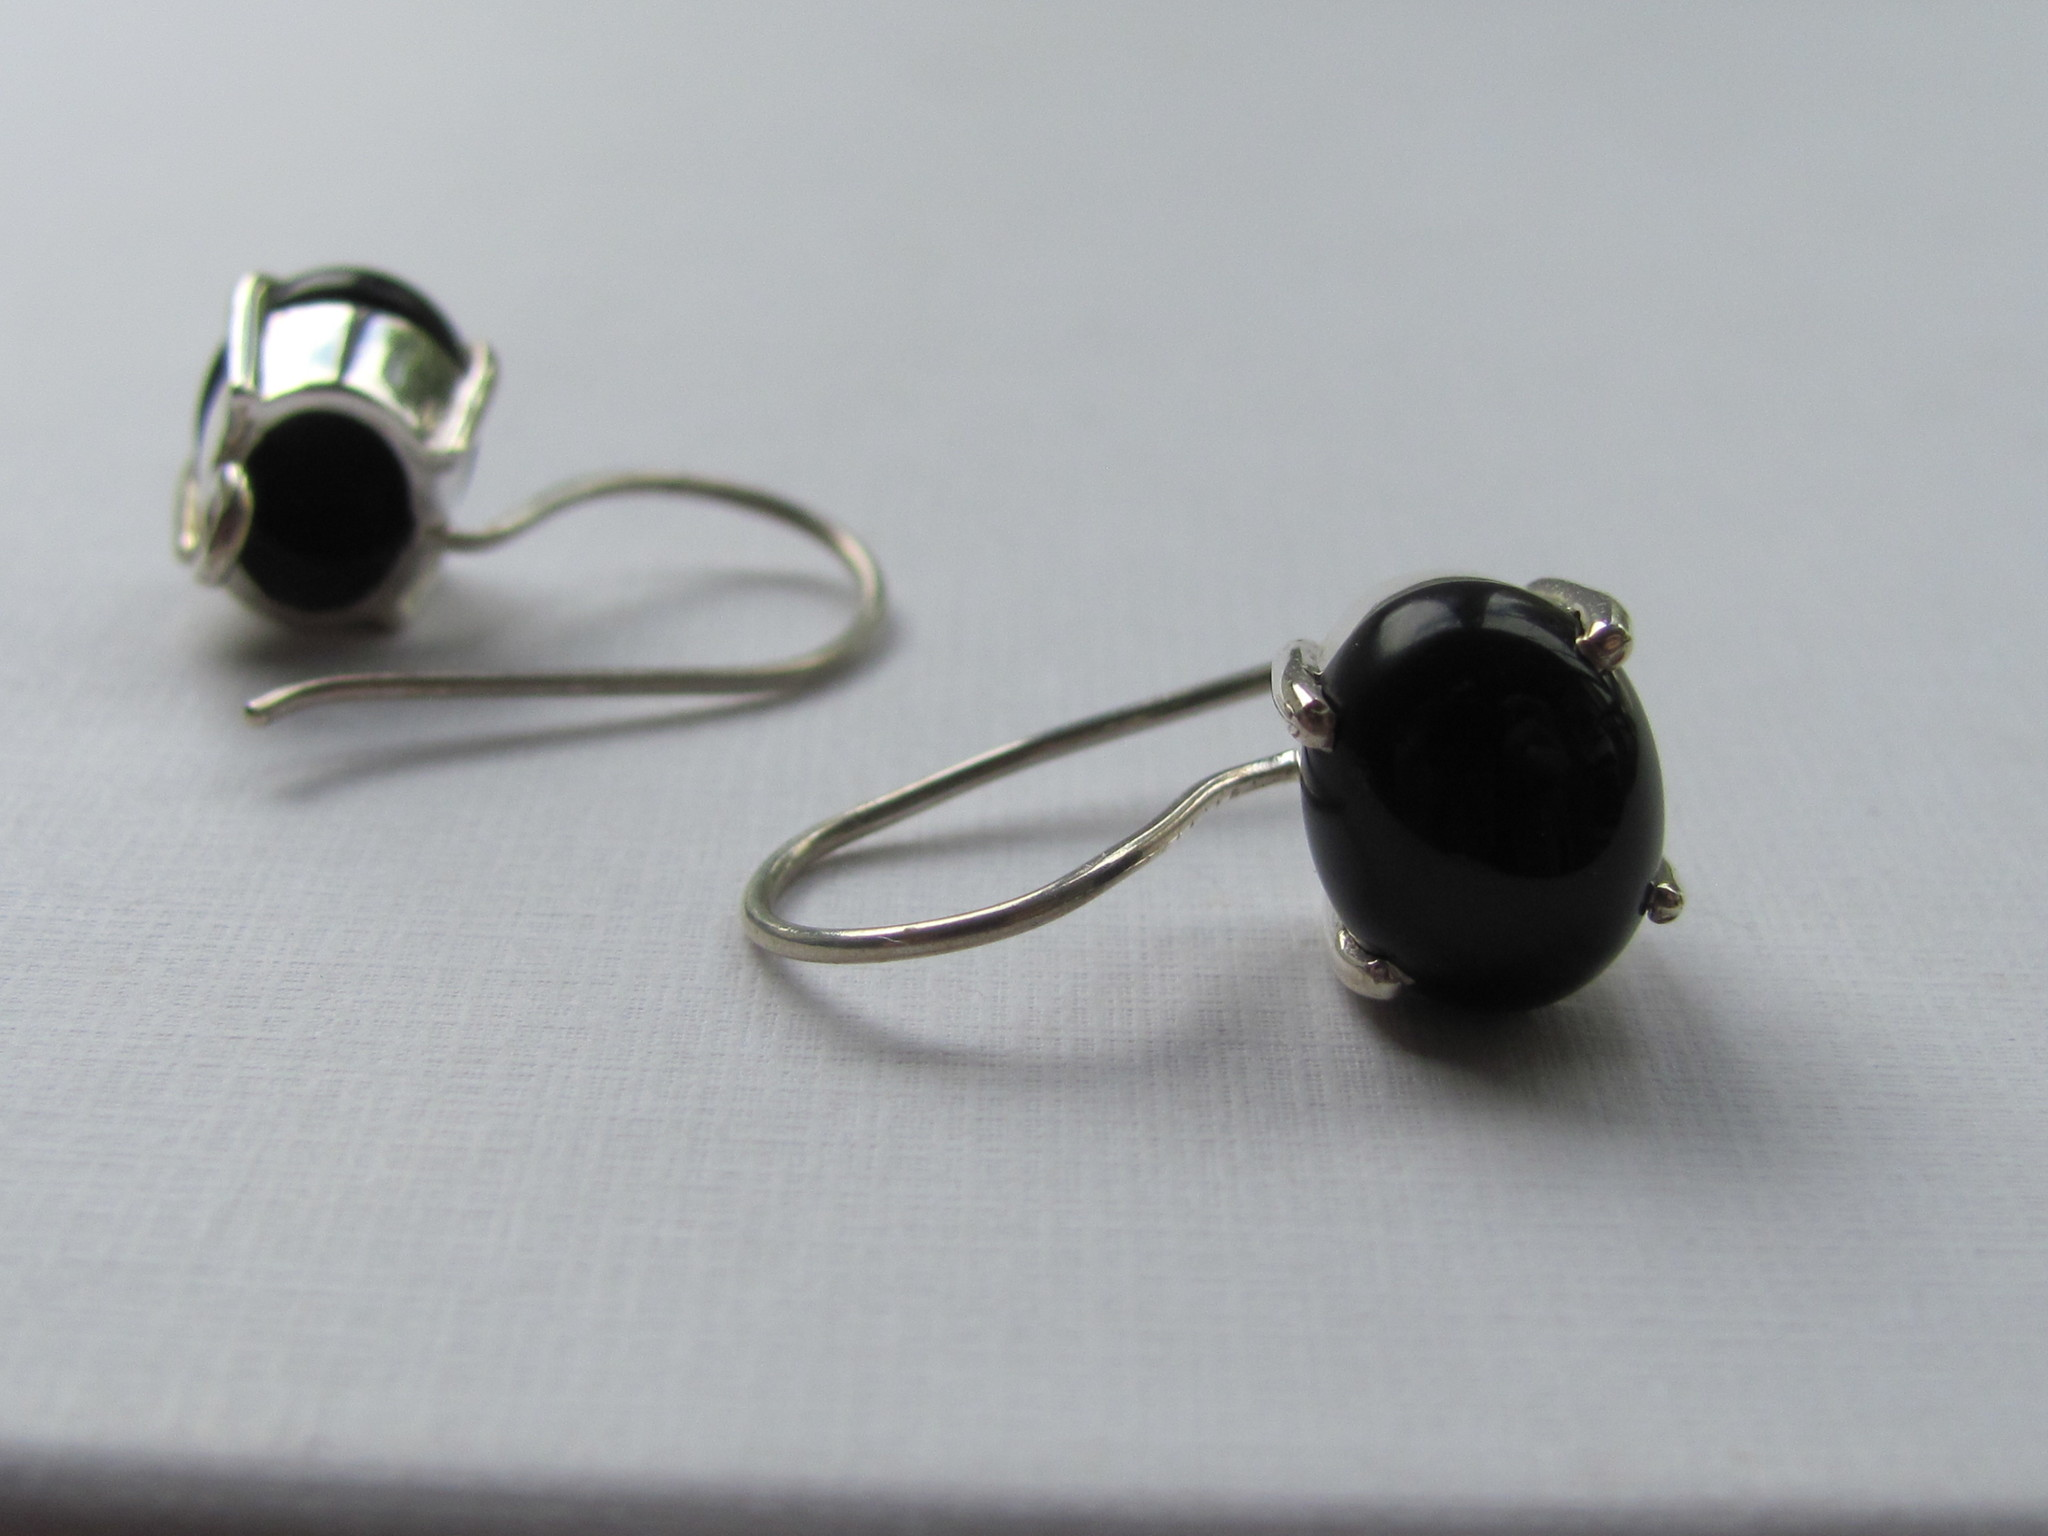 Earring dormeuse silver with  onyx